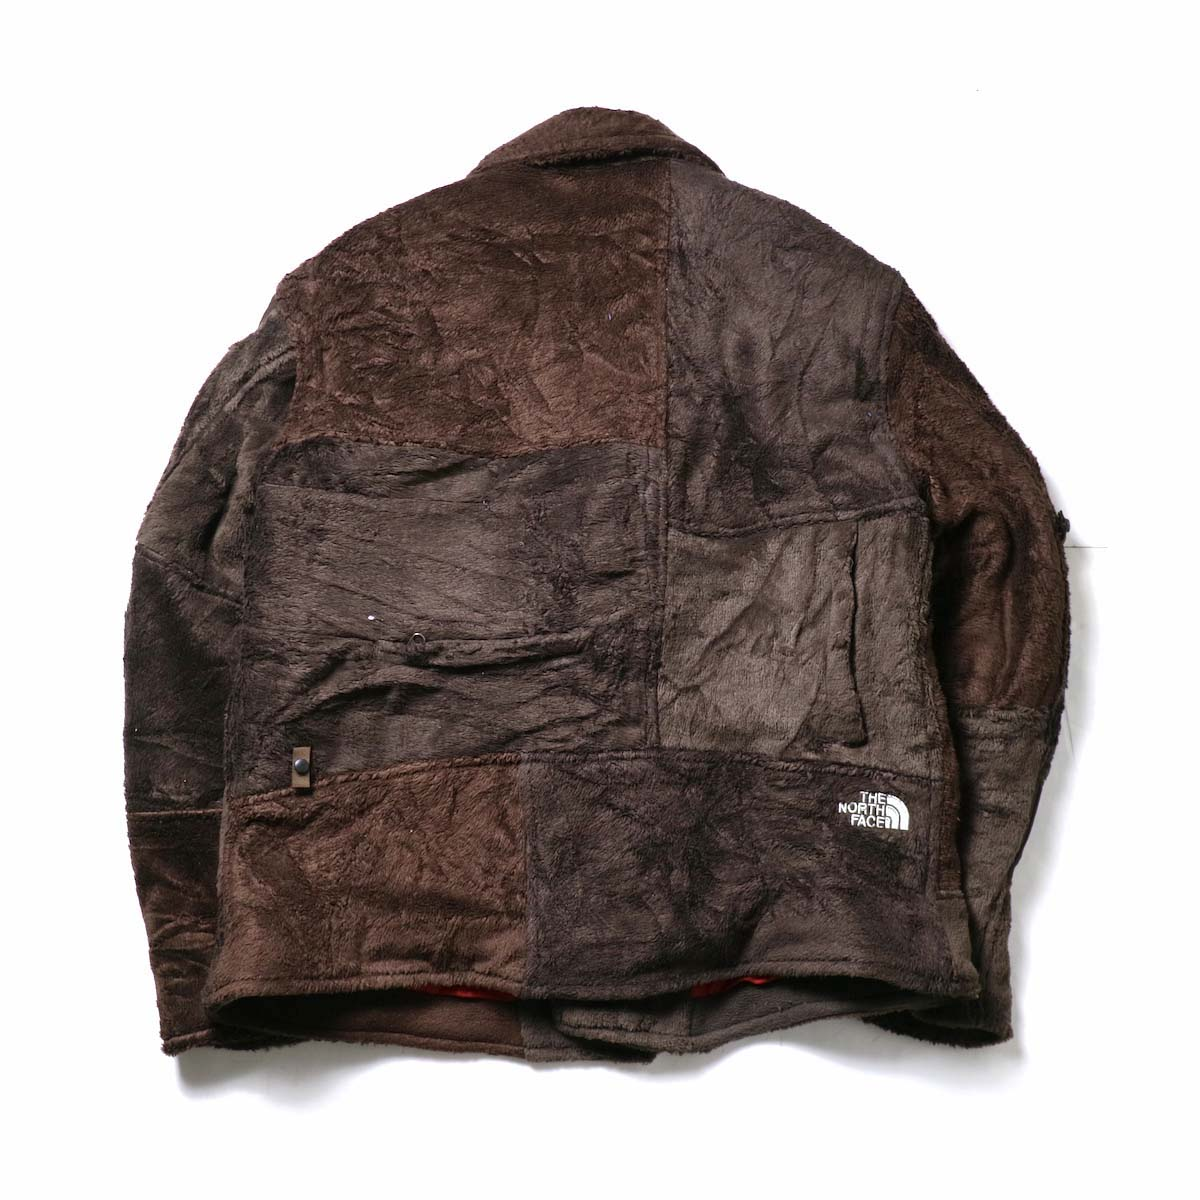 OLD PARK / Oversized Riders Jacket -Outdoor (Brown)背面